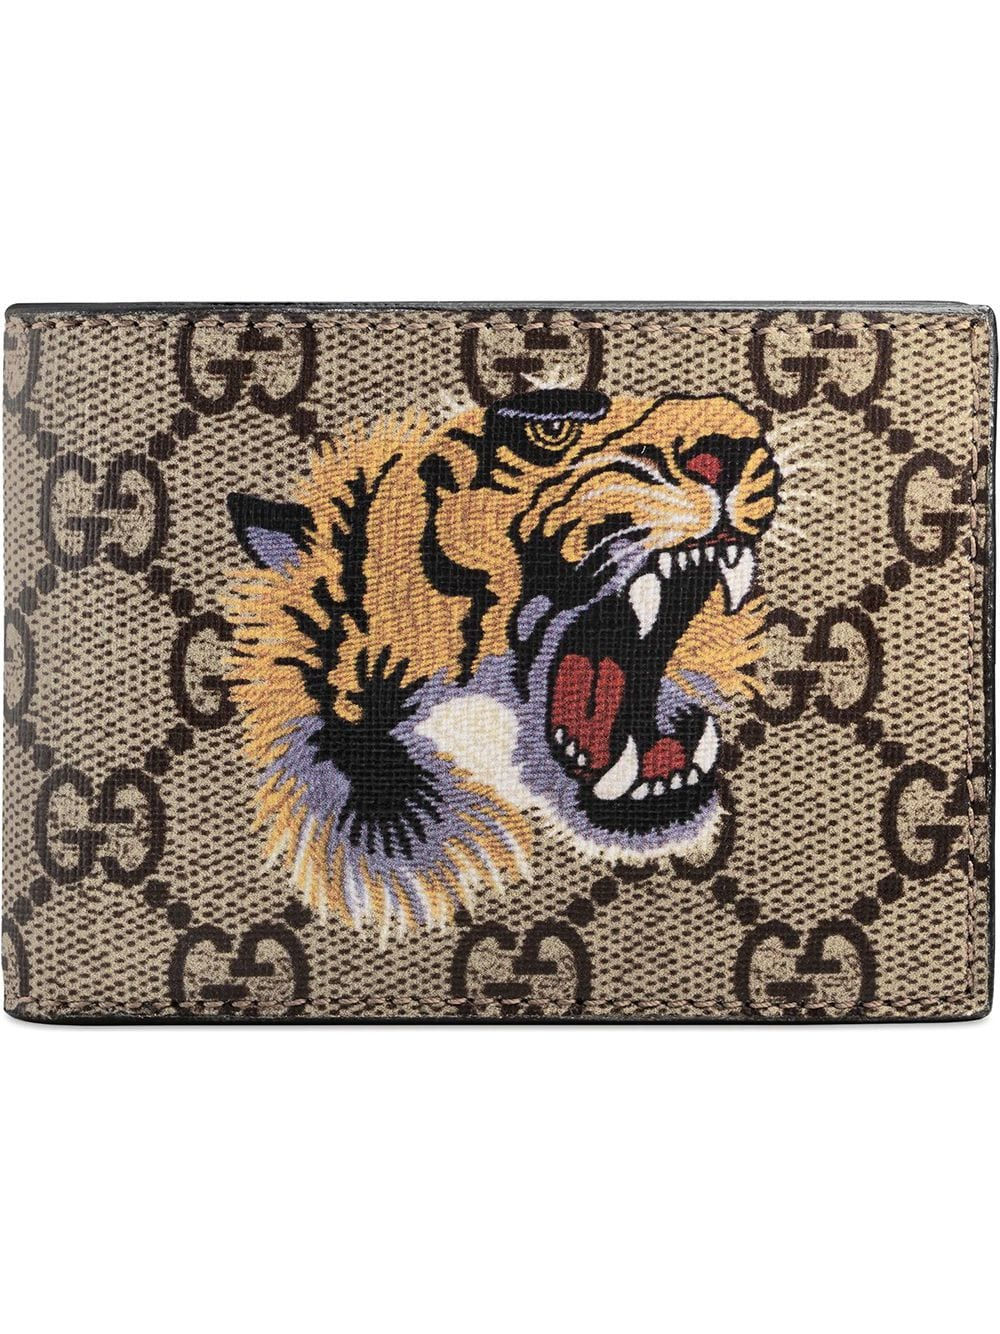 Tiger Printed Gg Supreme Classic Wallet In 8666 Eb/mul